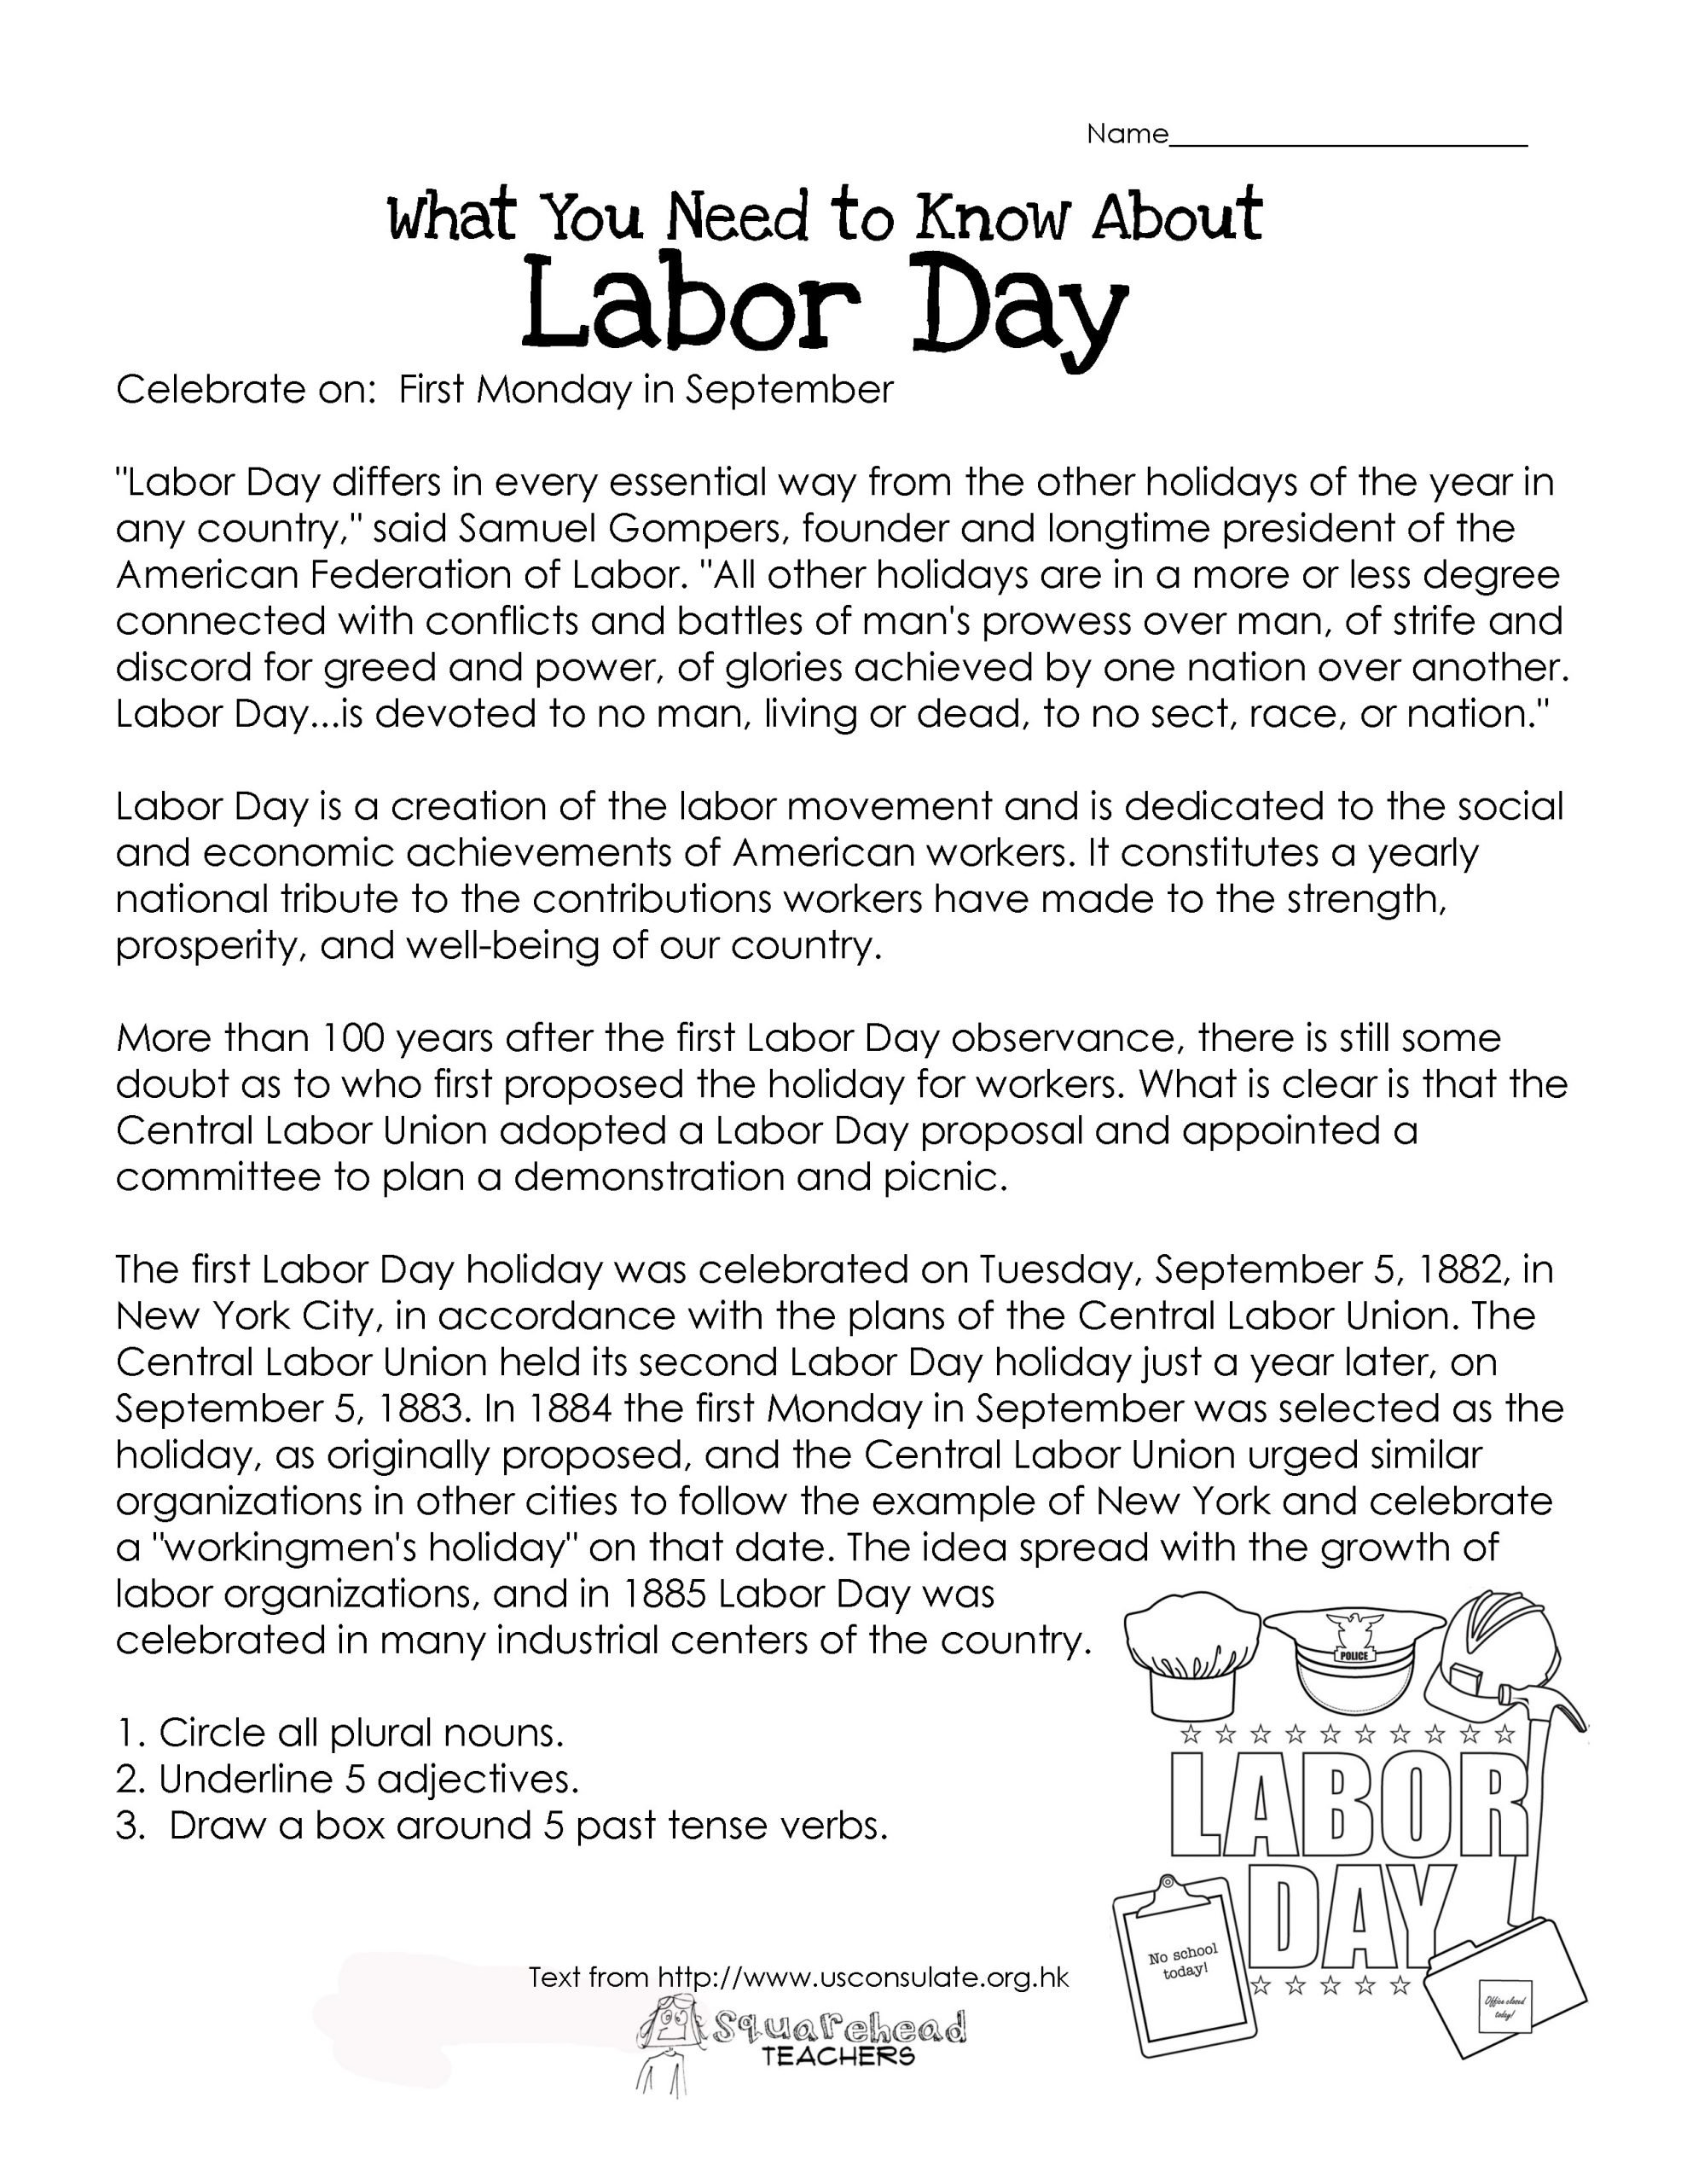 Memorial Day Reading Comprehension Worksheets Labor Day What You Need to Know Free Worksheet